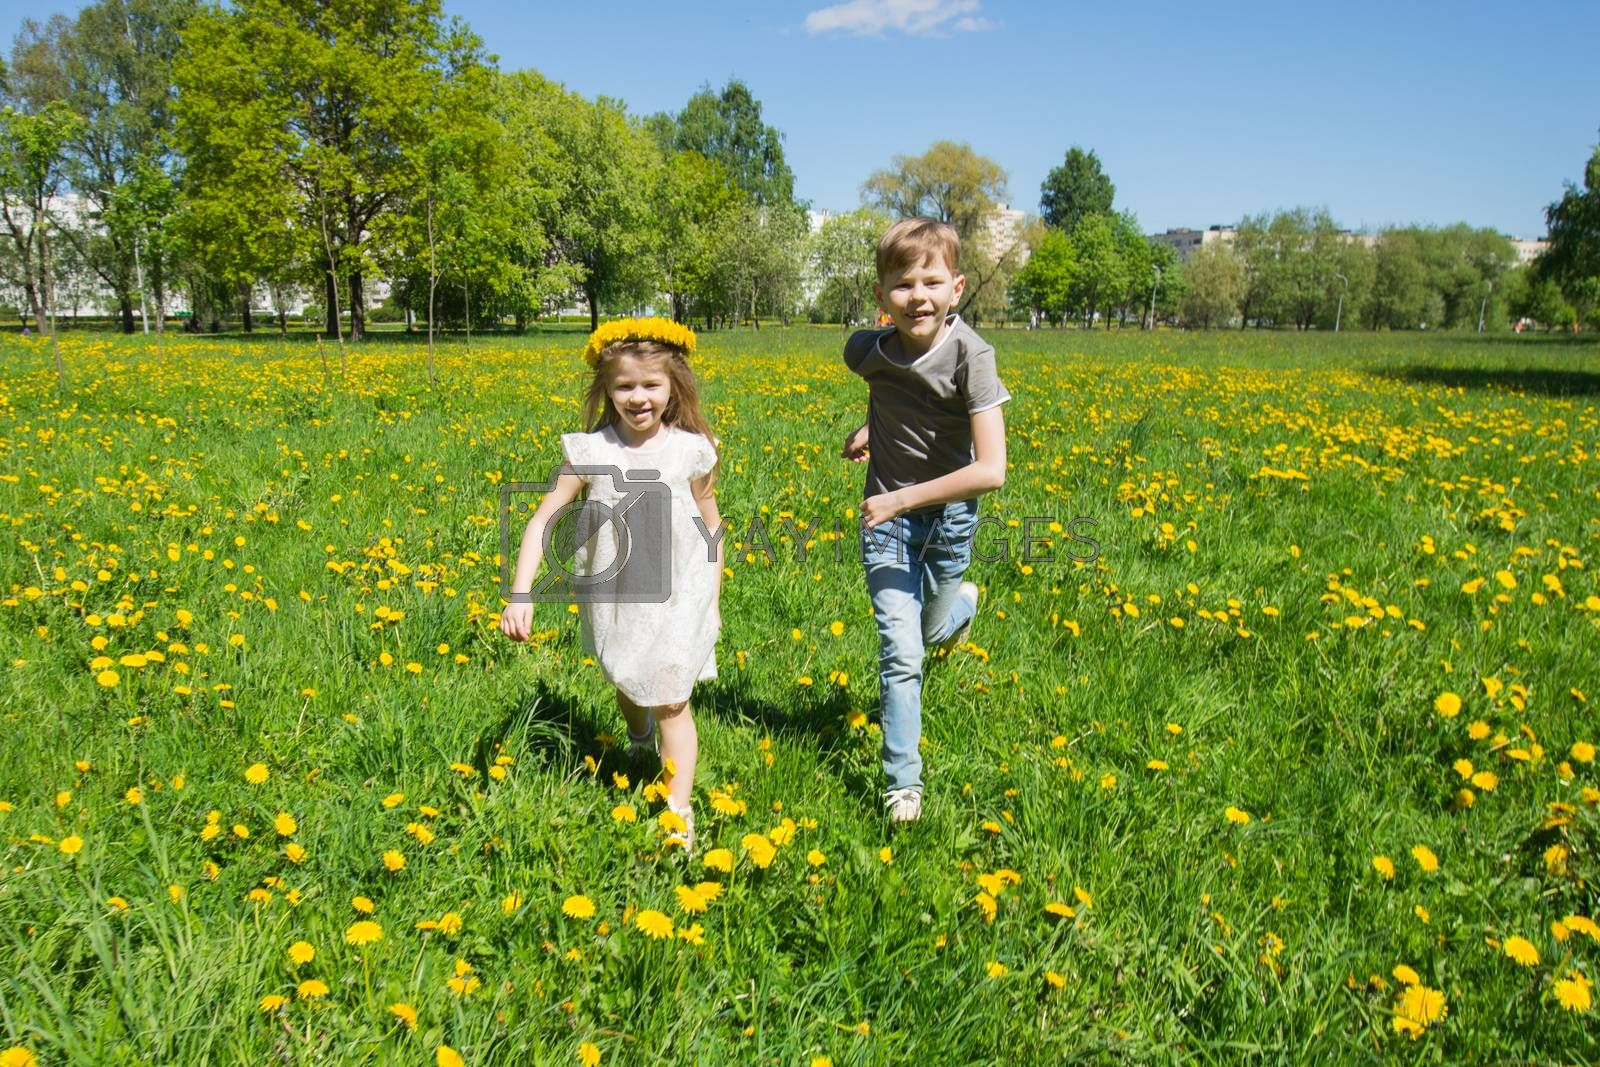 Young boy and girl brither and sister running in a sunny meadow with dandelion flowers family fun concept